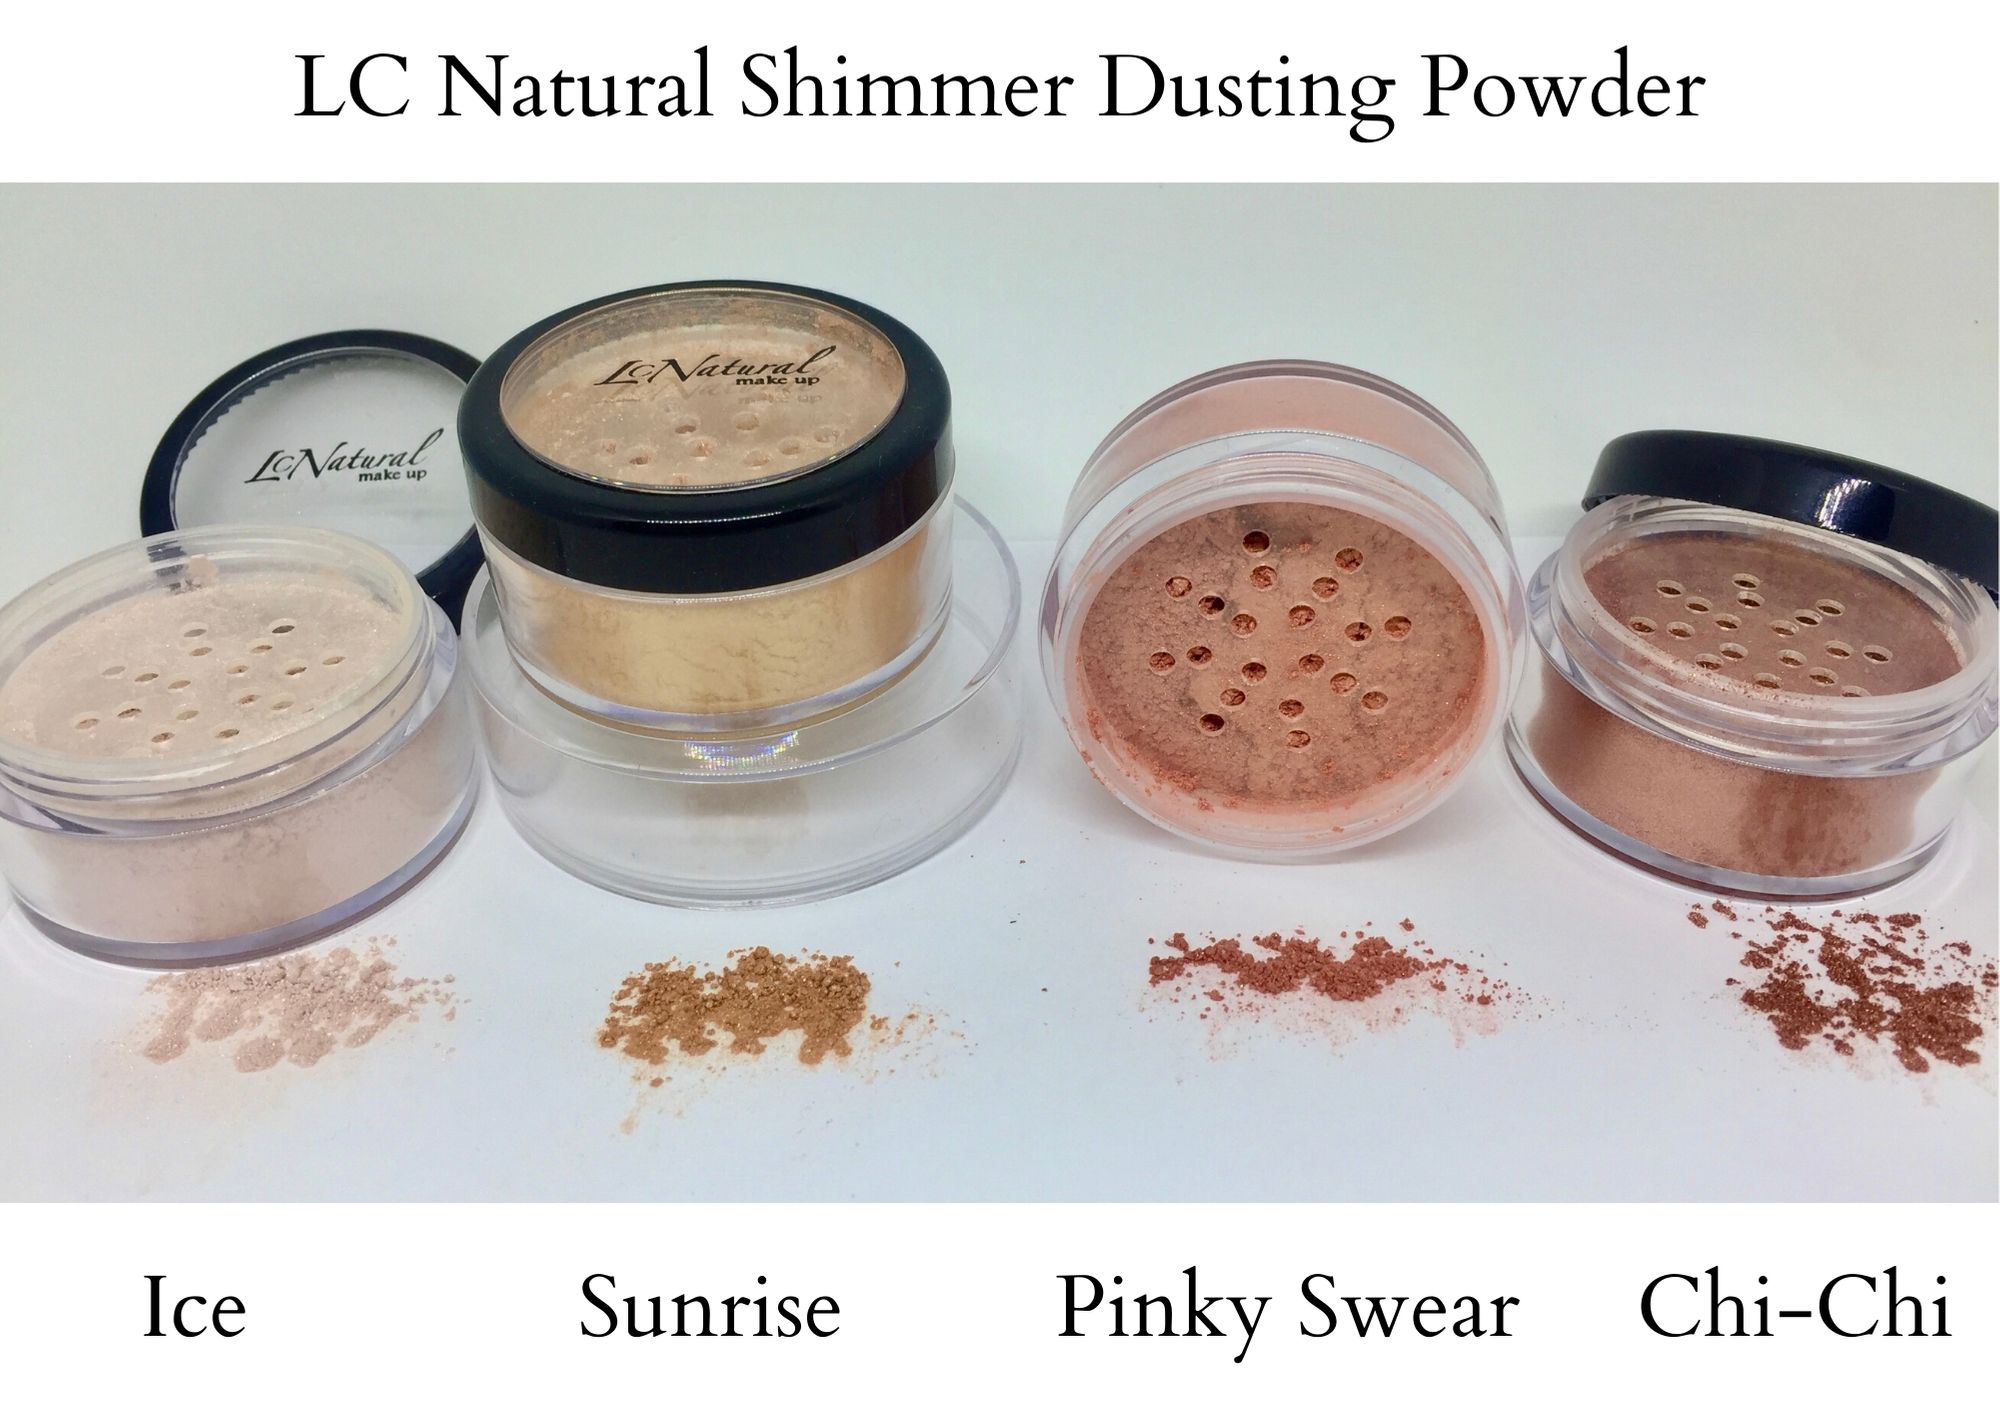 LC Natural Shimmer Dusting Powder